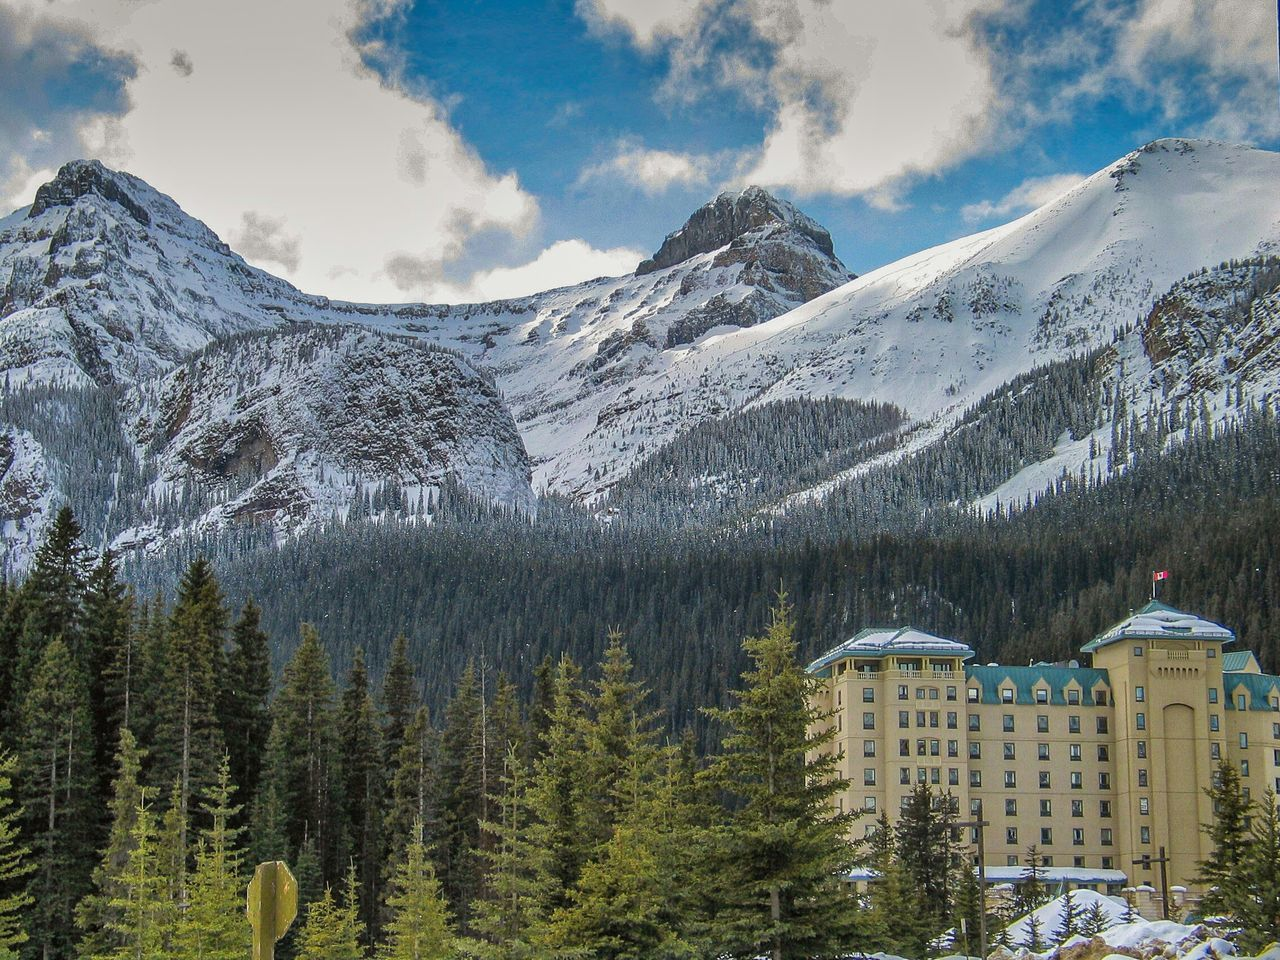 View Of Hotel With Snowcapped Mountain In Background